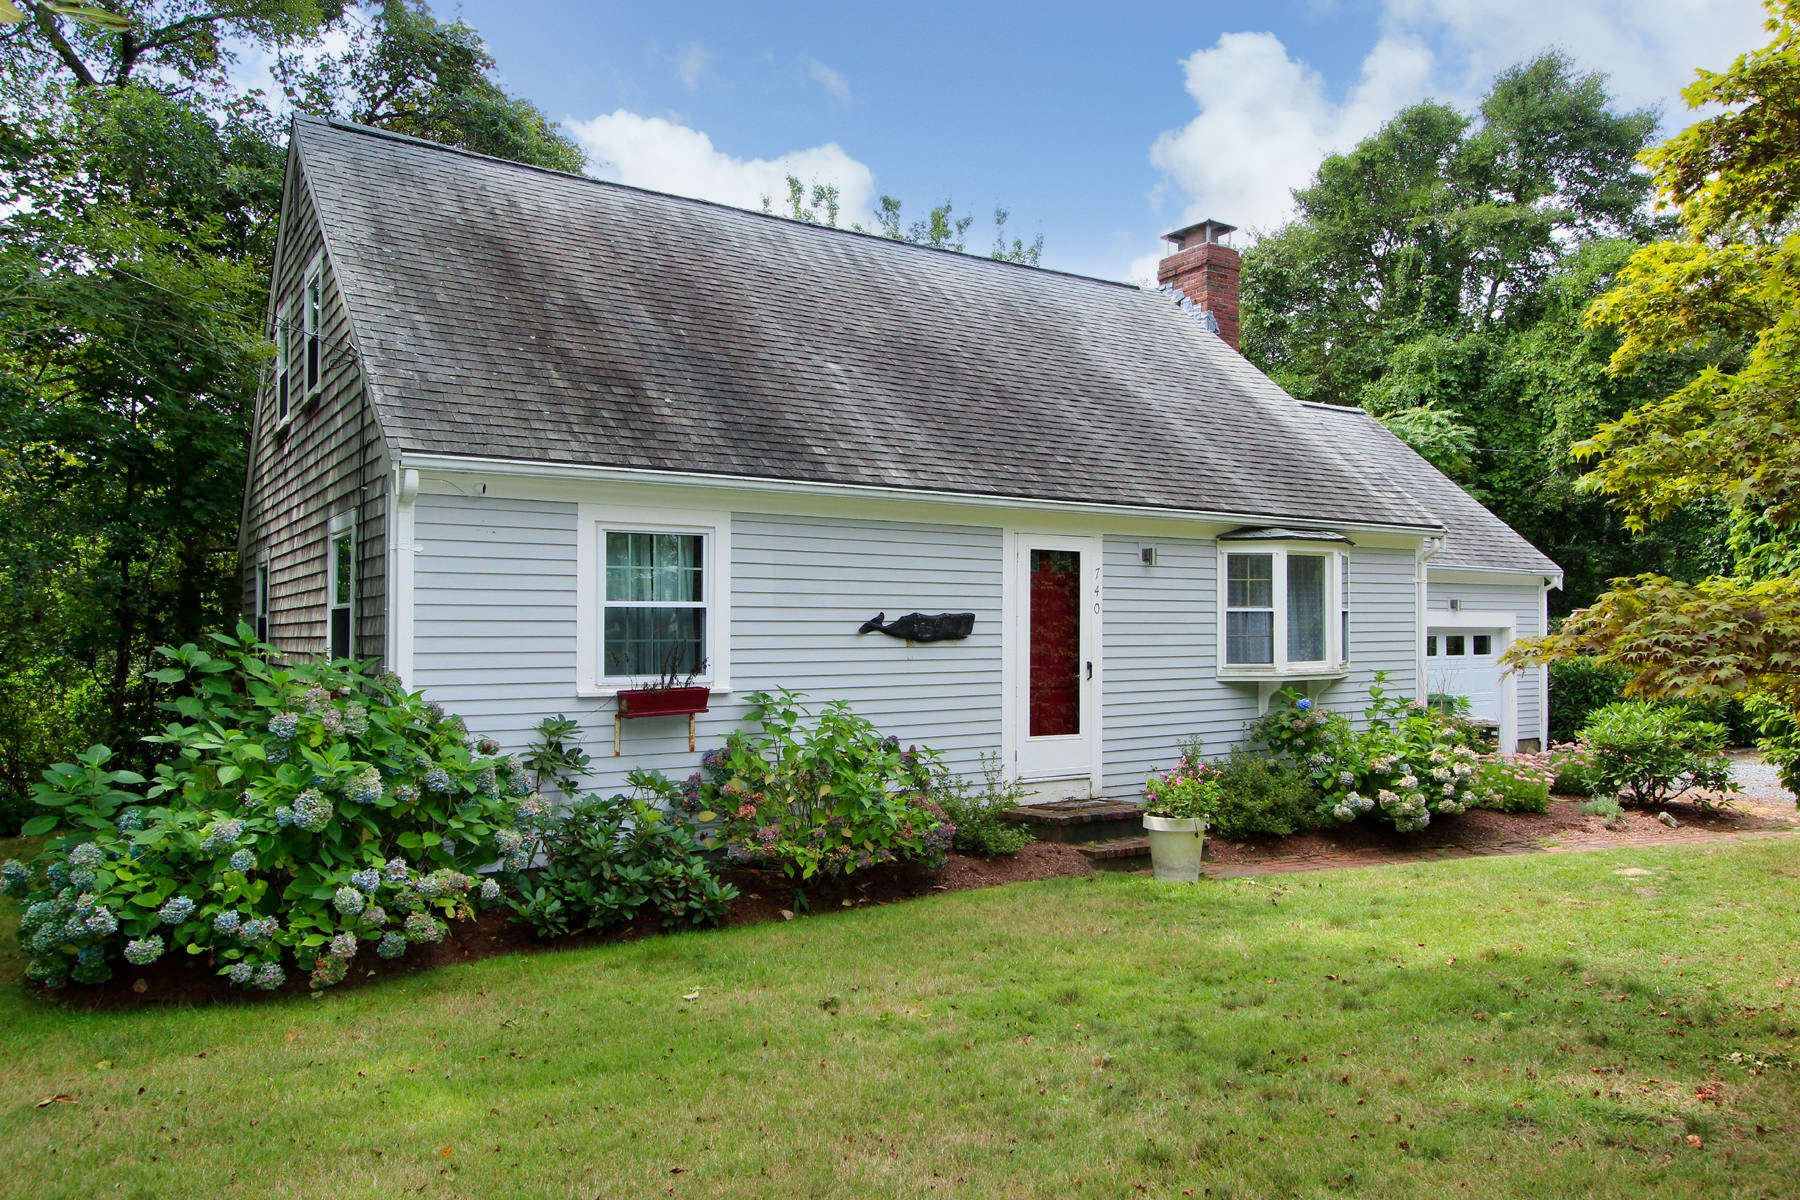 Single Family Homes for Active at 740 Lower Road, Brewster, MA 740 Lower Road Brewster, Massachusetts 02631 United States